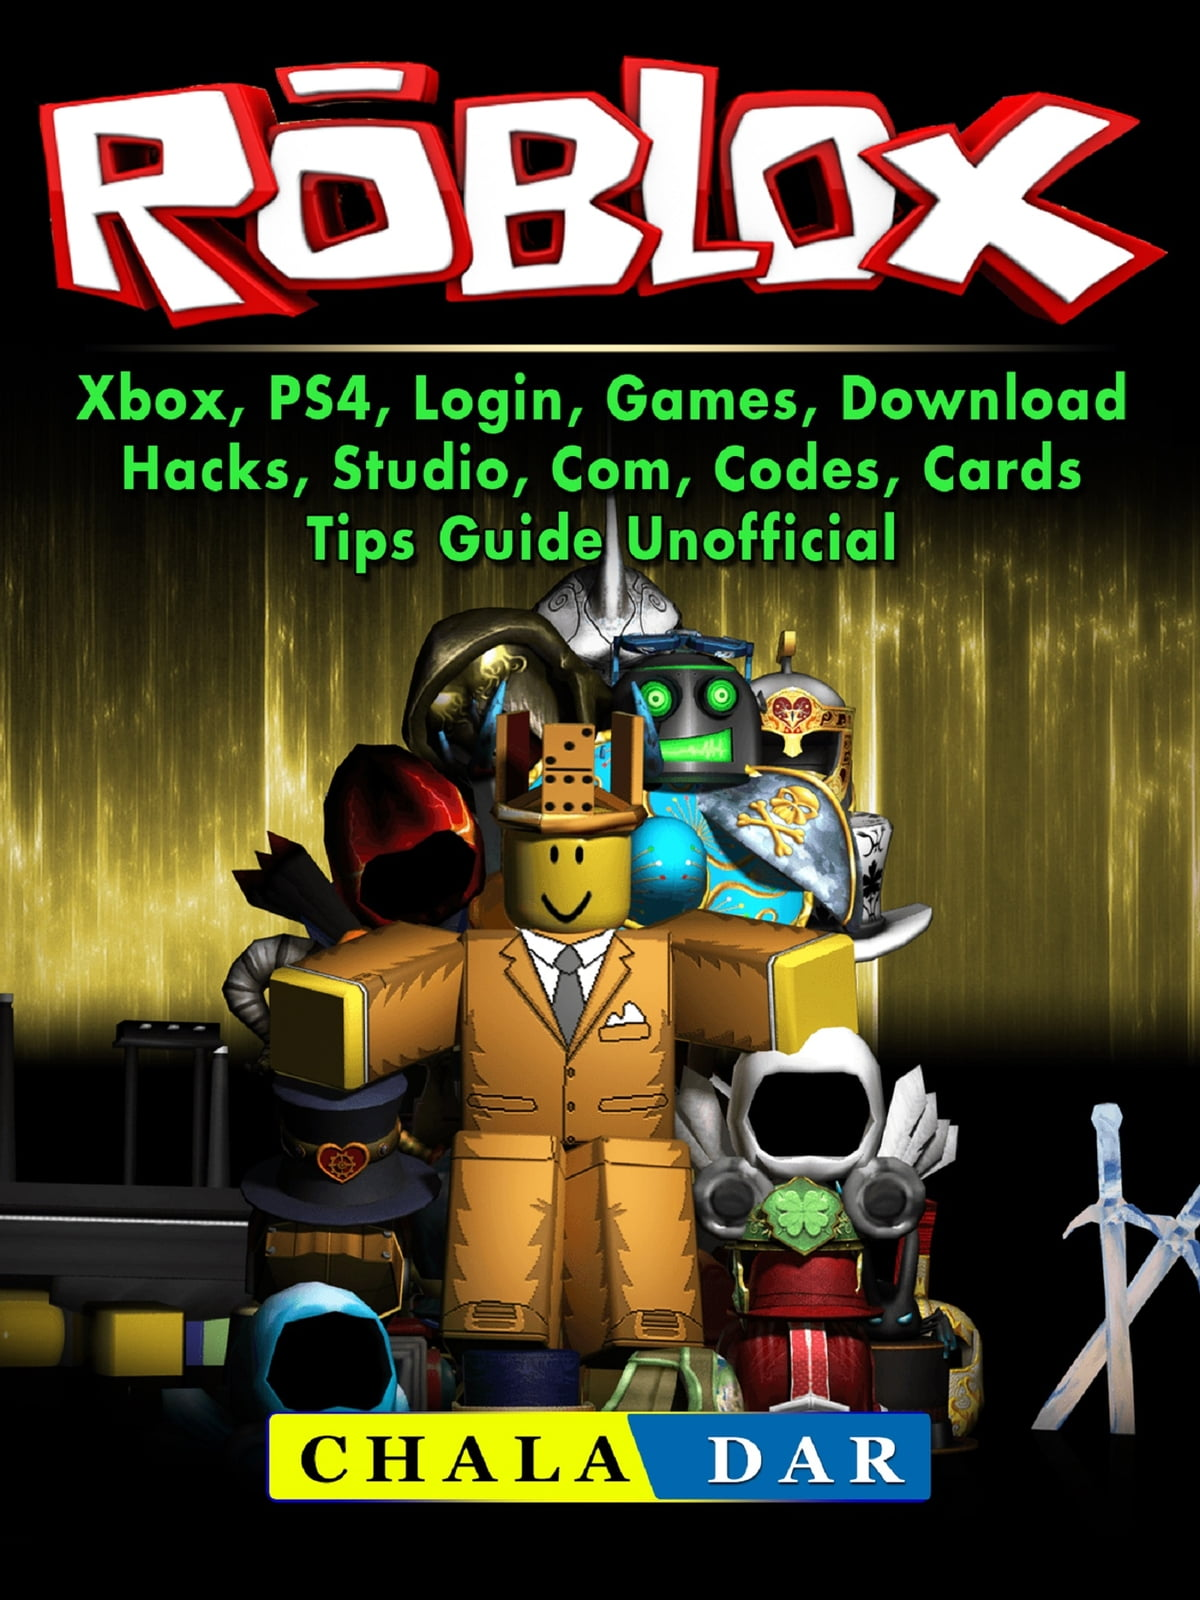 Roblox Xbox Ps4 Login Games Download Hacks Studio Com Codes